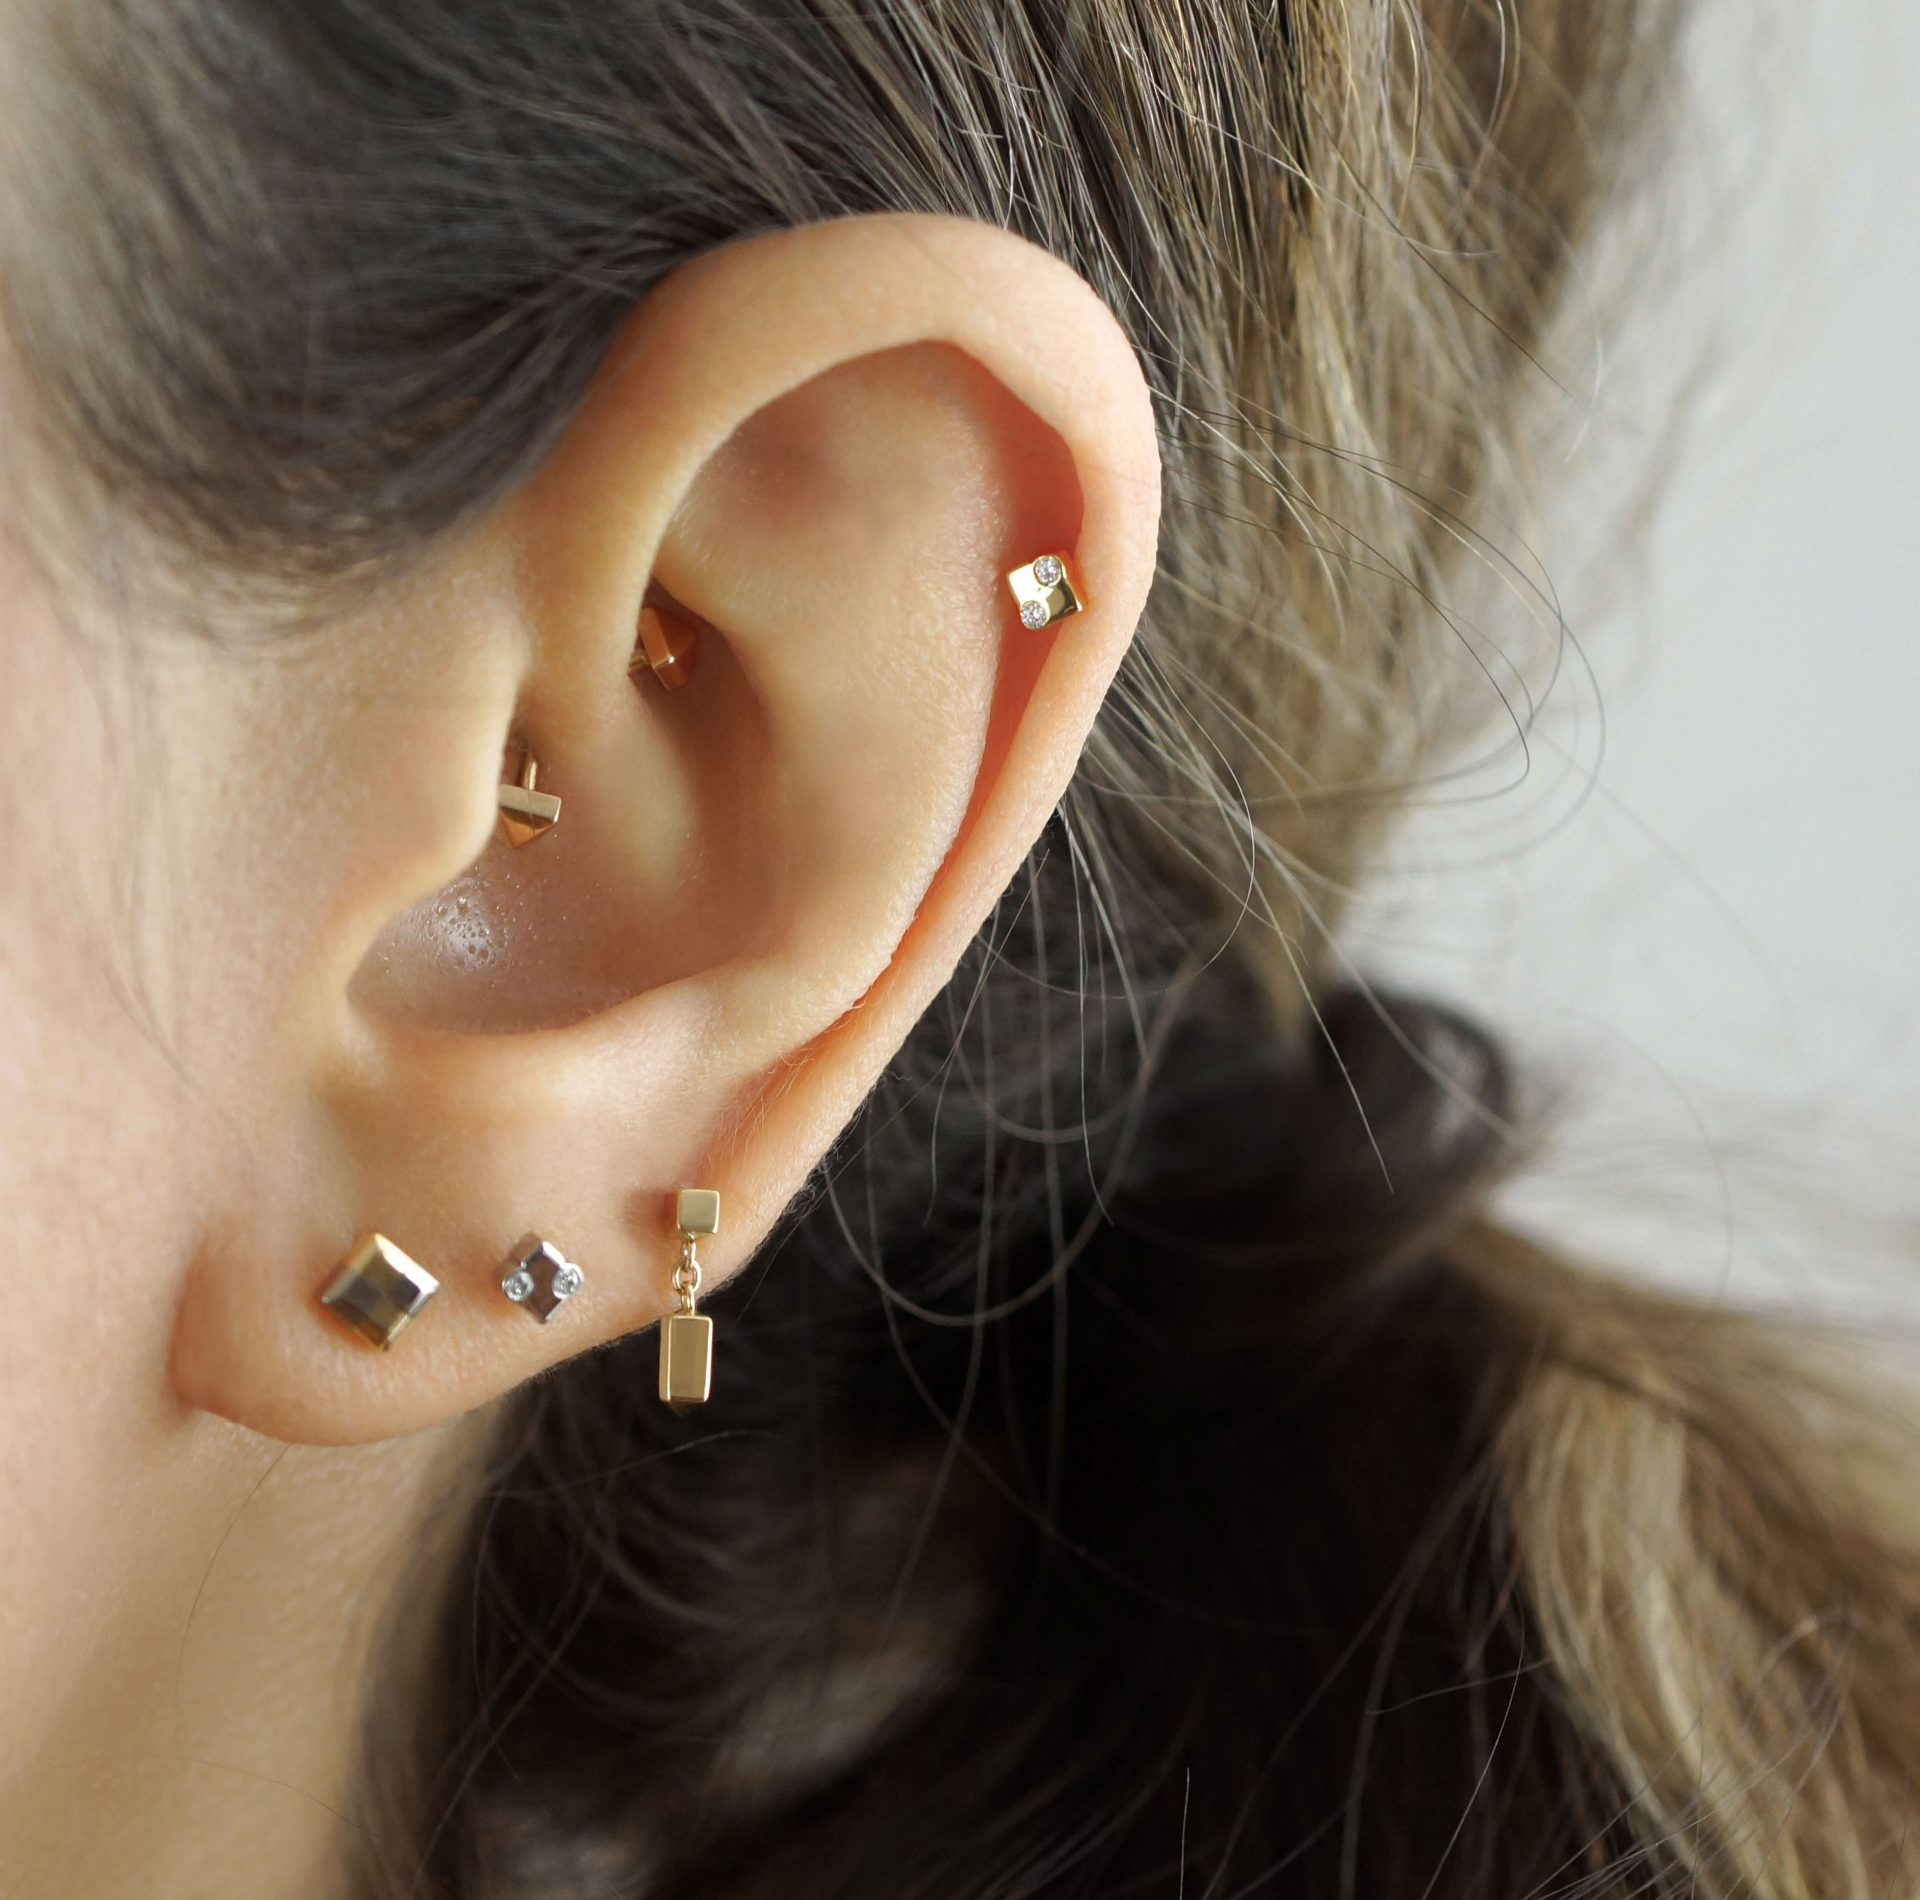 Minimalistic-geometric-luxury-screw-back-cartilage-earring-by-British-designer-Lena-Cohen-United-Kingdom